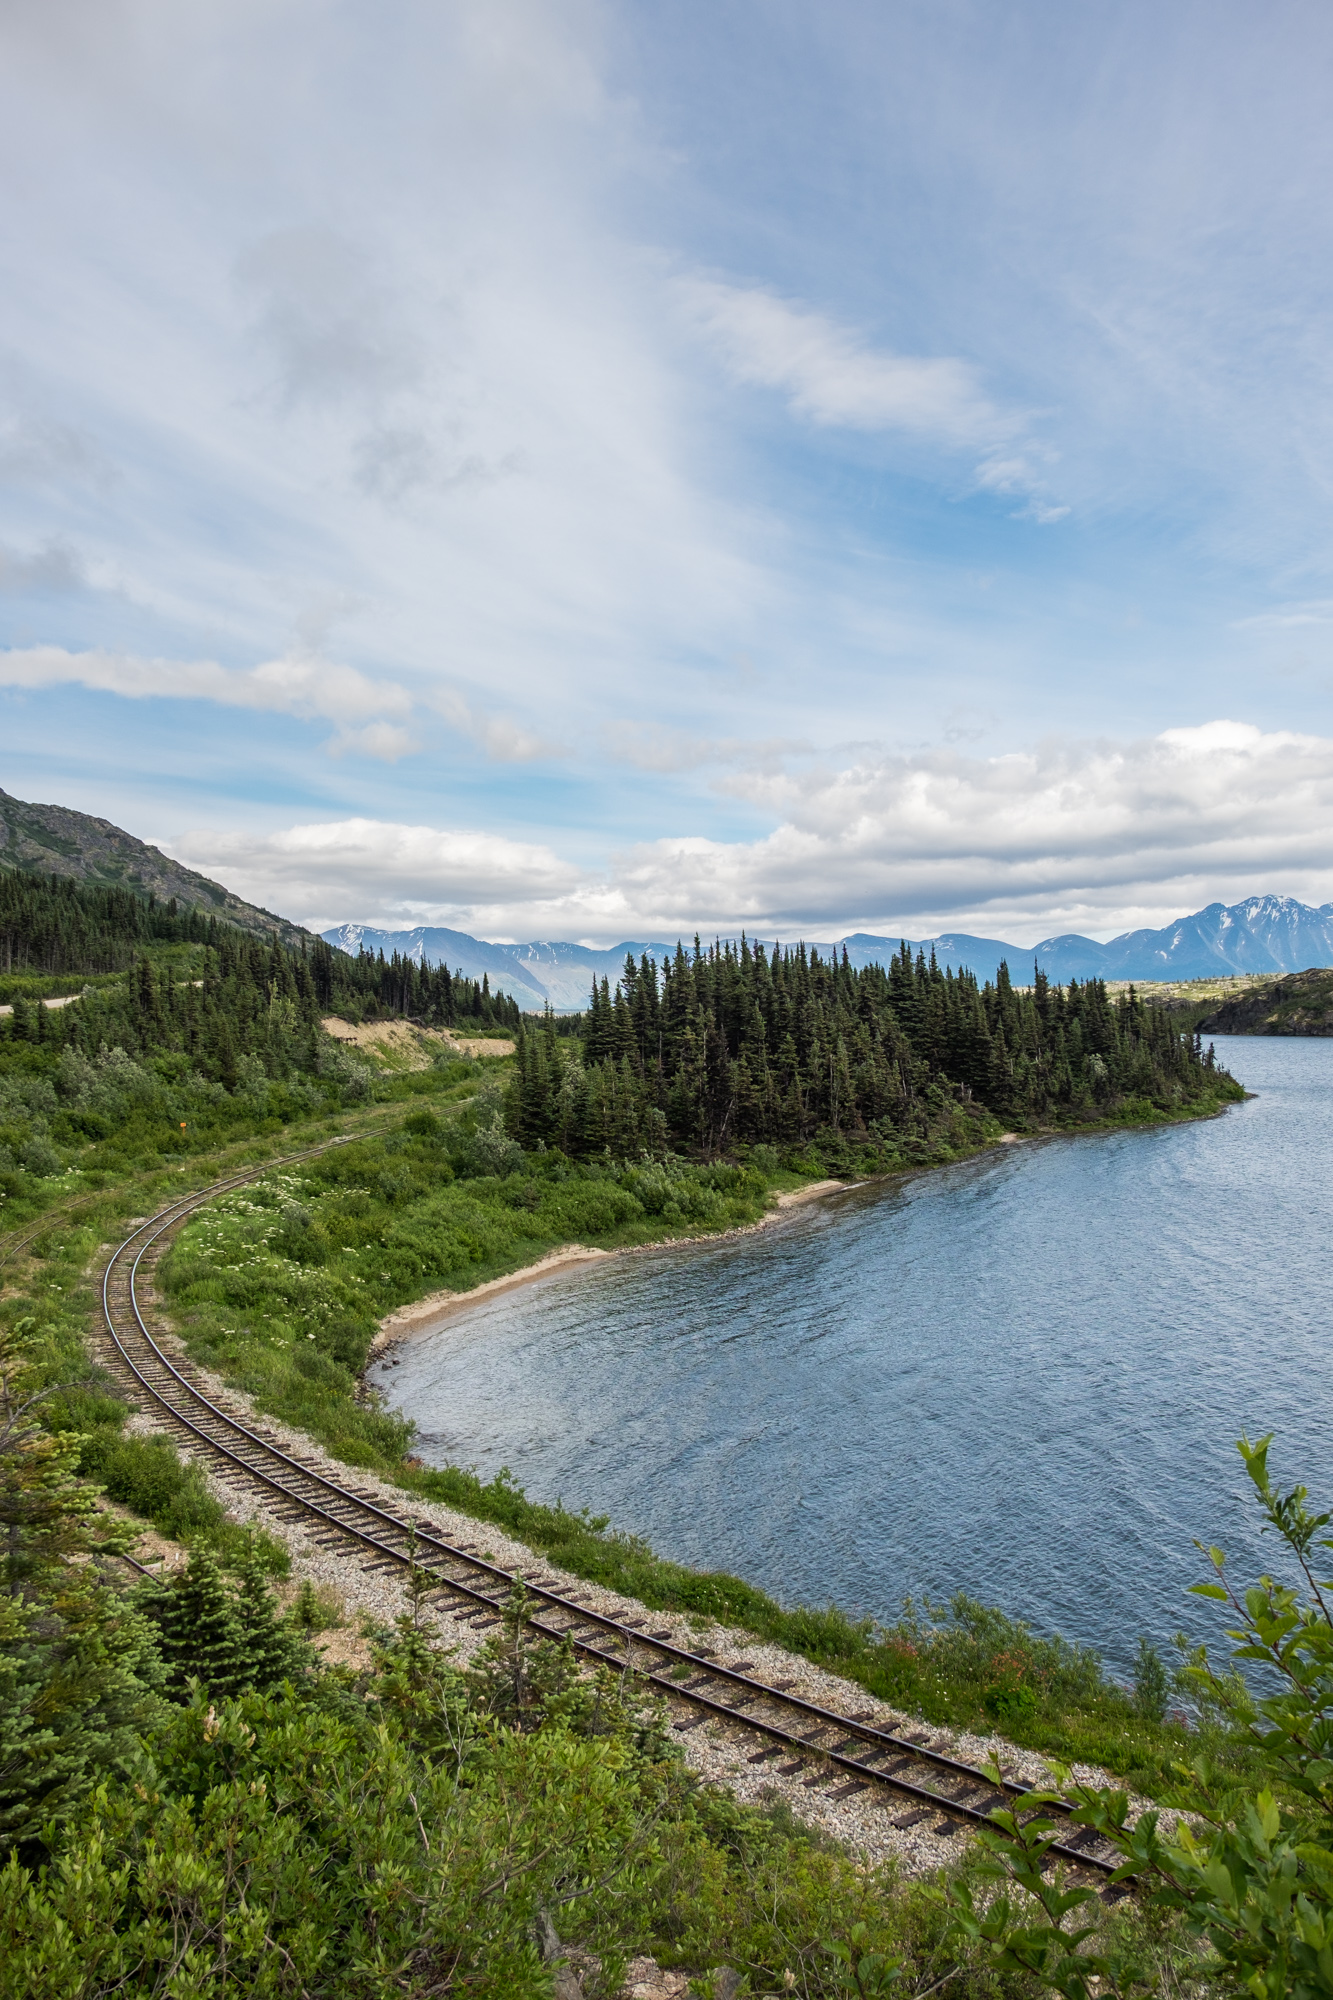 We had to drive to Skagway to fly to Gustavus, and we passed this cool old-time Klondike railroad along the way.